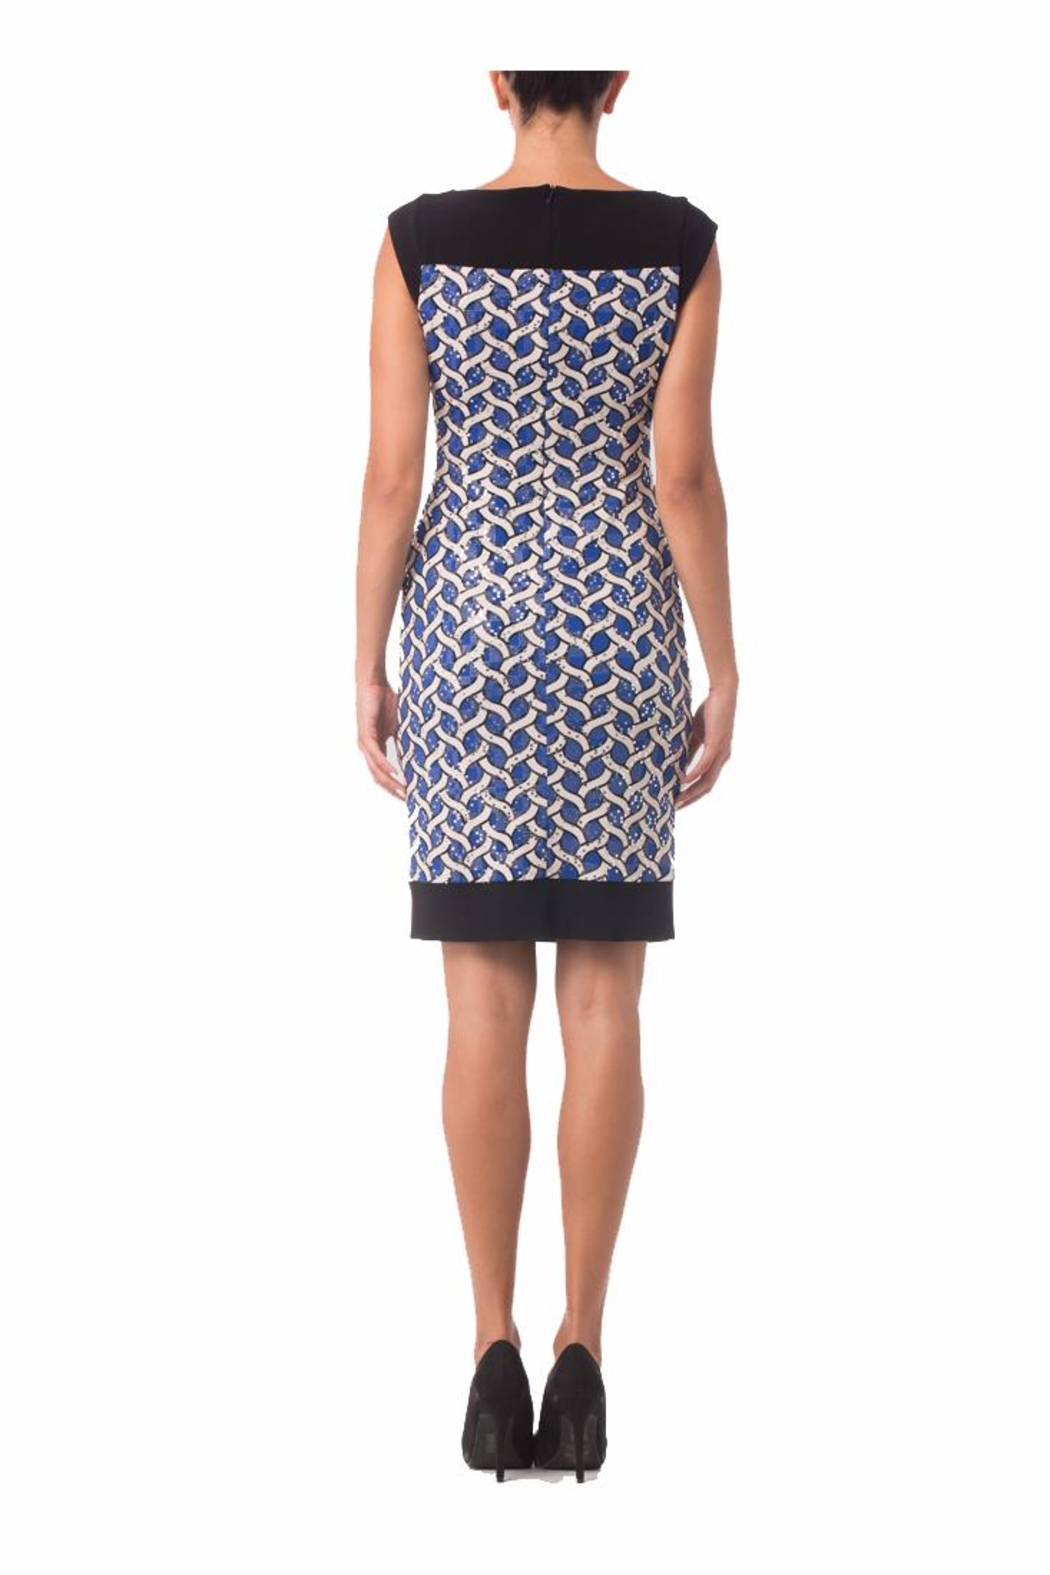 Joseph Ribkoff Black Printed Dress - Front Full Image